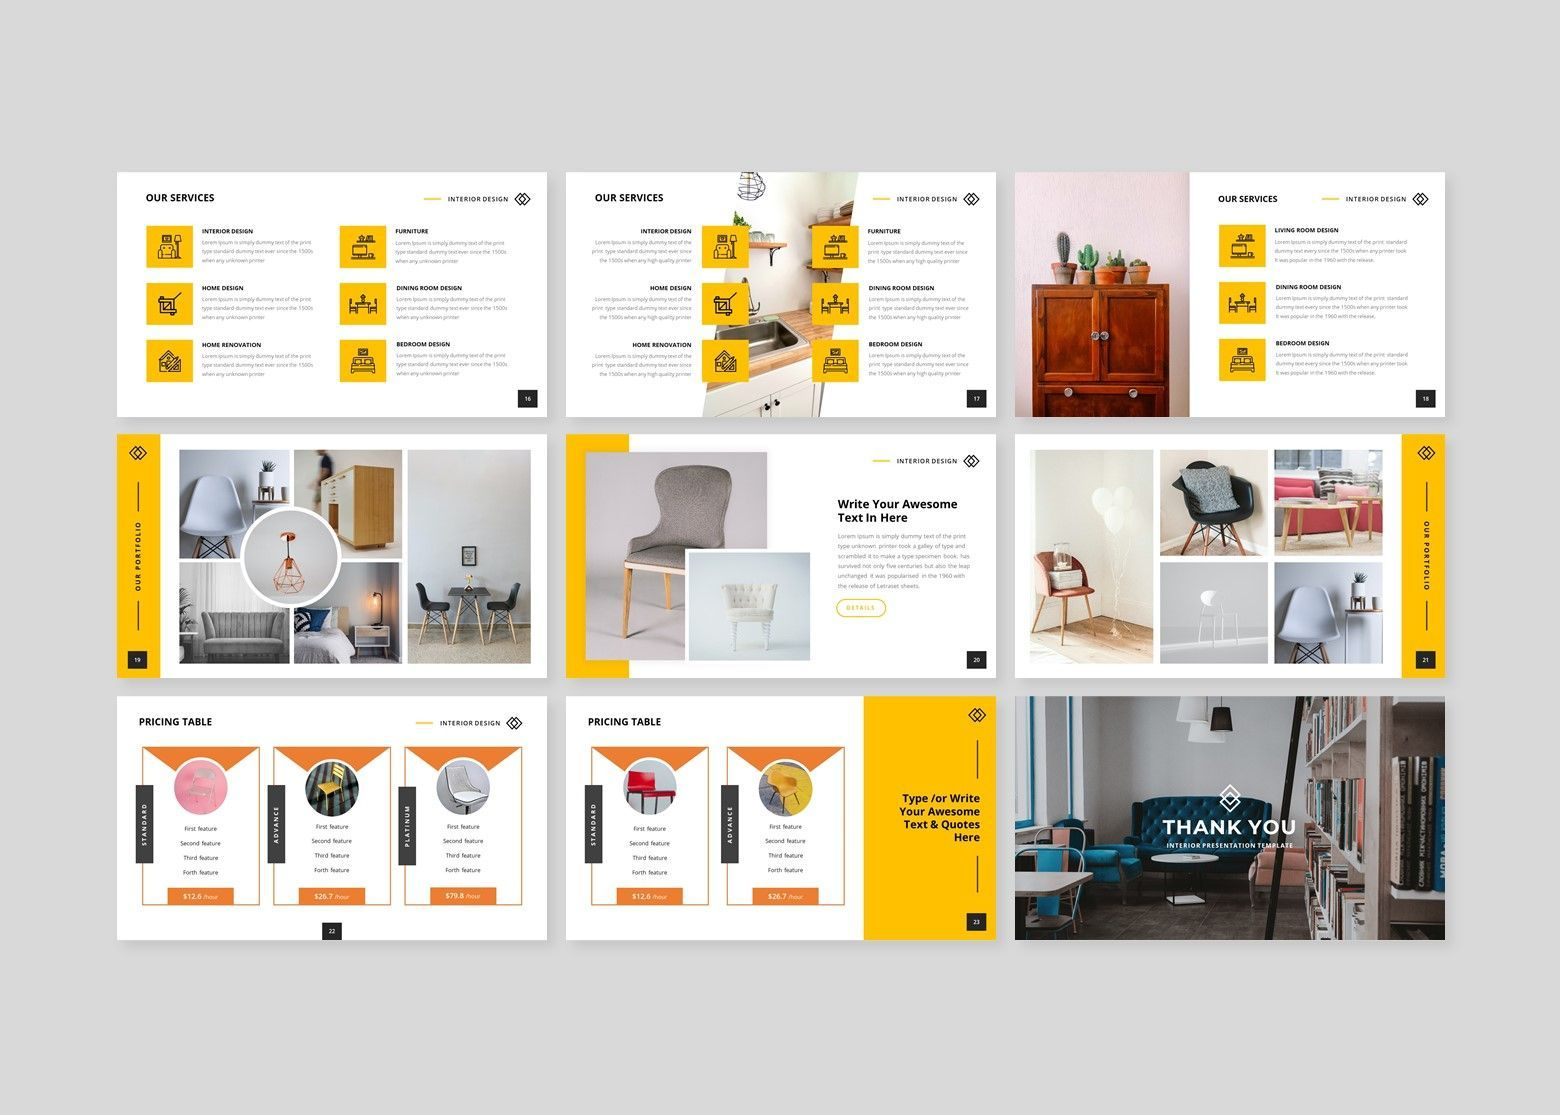 Furnite - Interior Design Google Slides Template, Slide 4, 08628, Business Models — PoweredTemplate.com